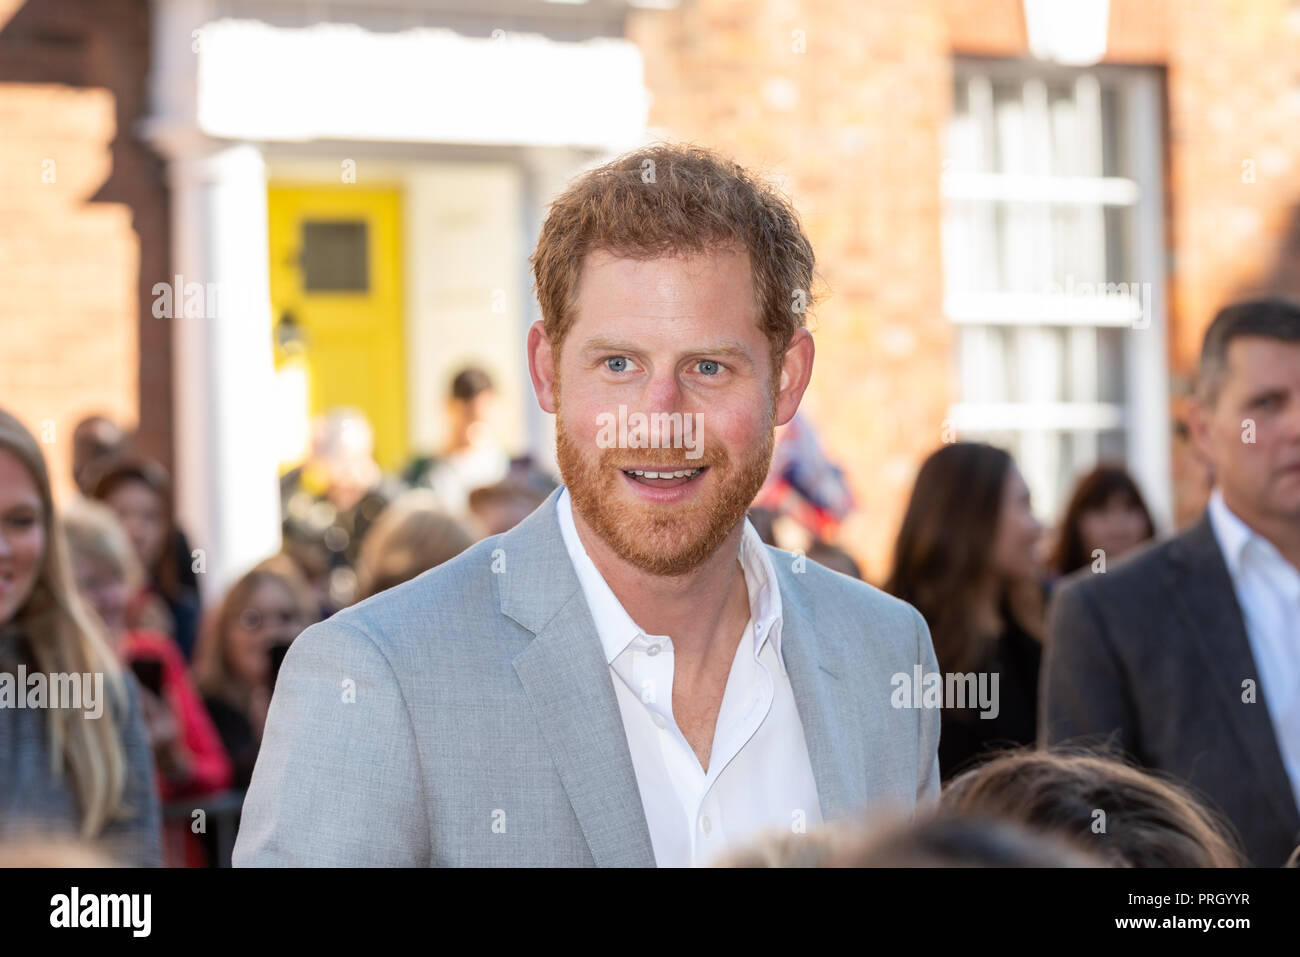 Prince Harry PortraitStock Photos and Images